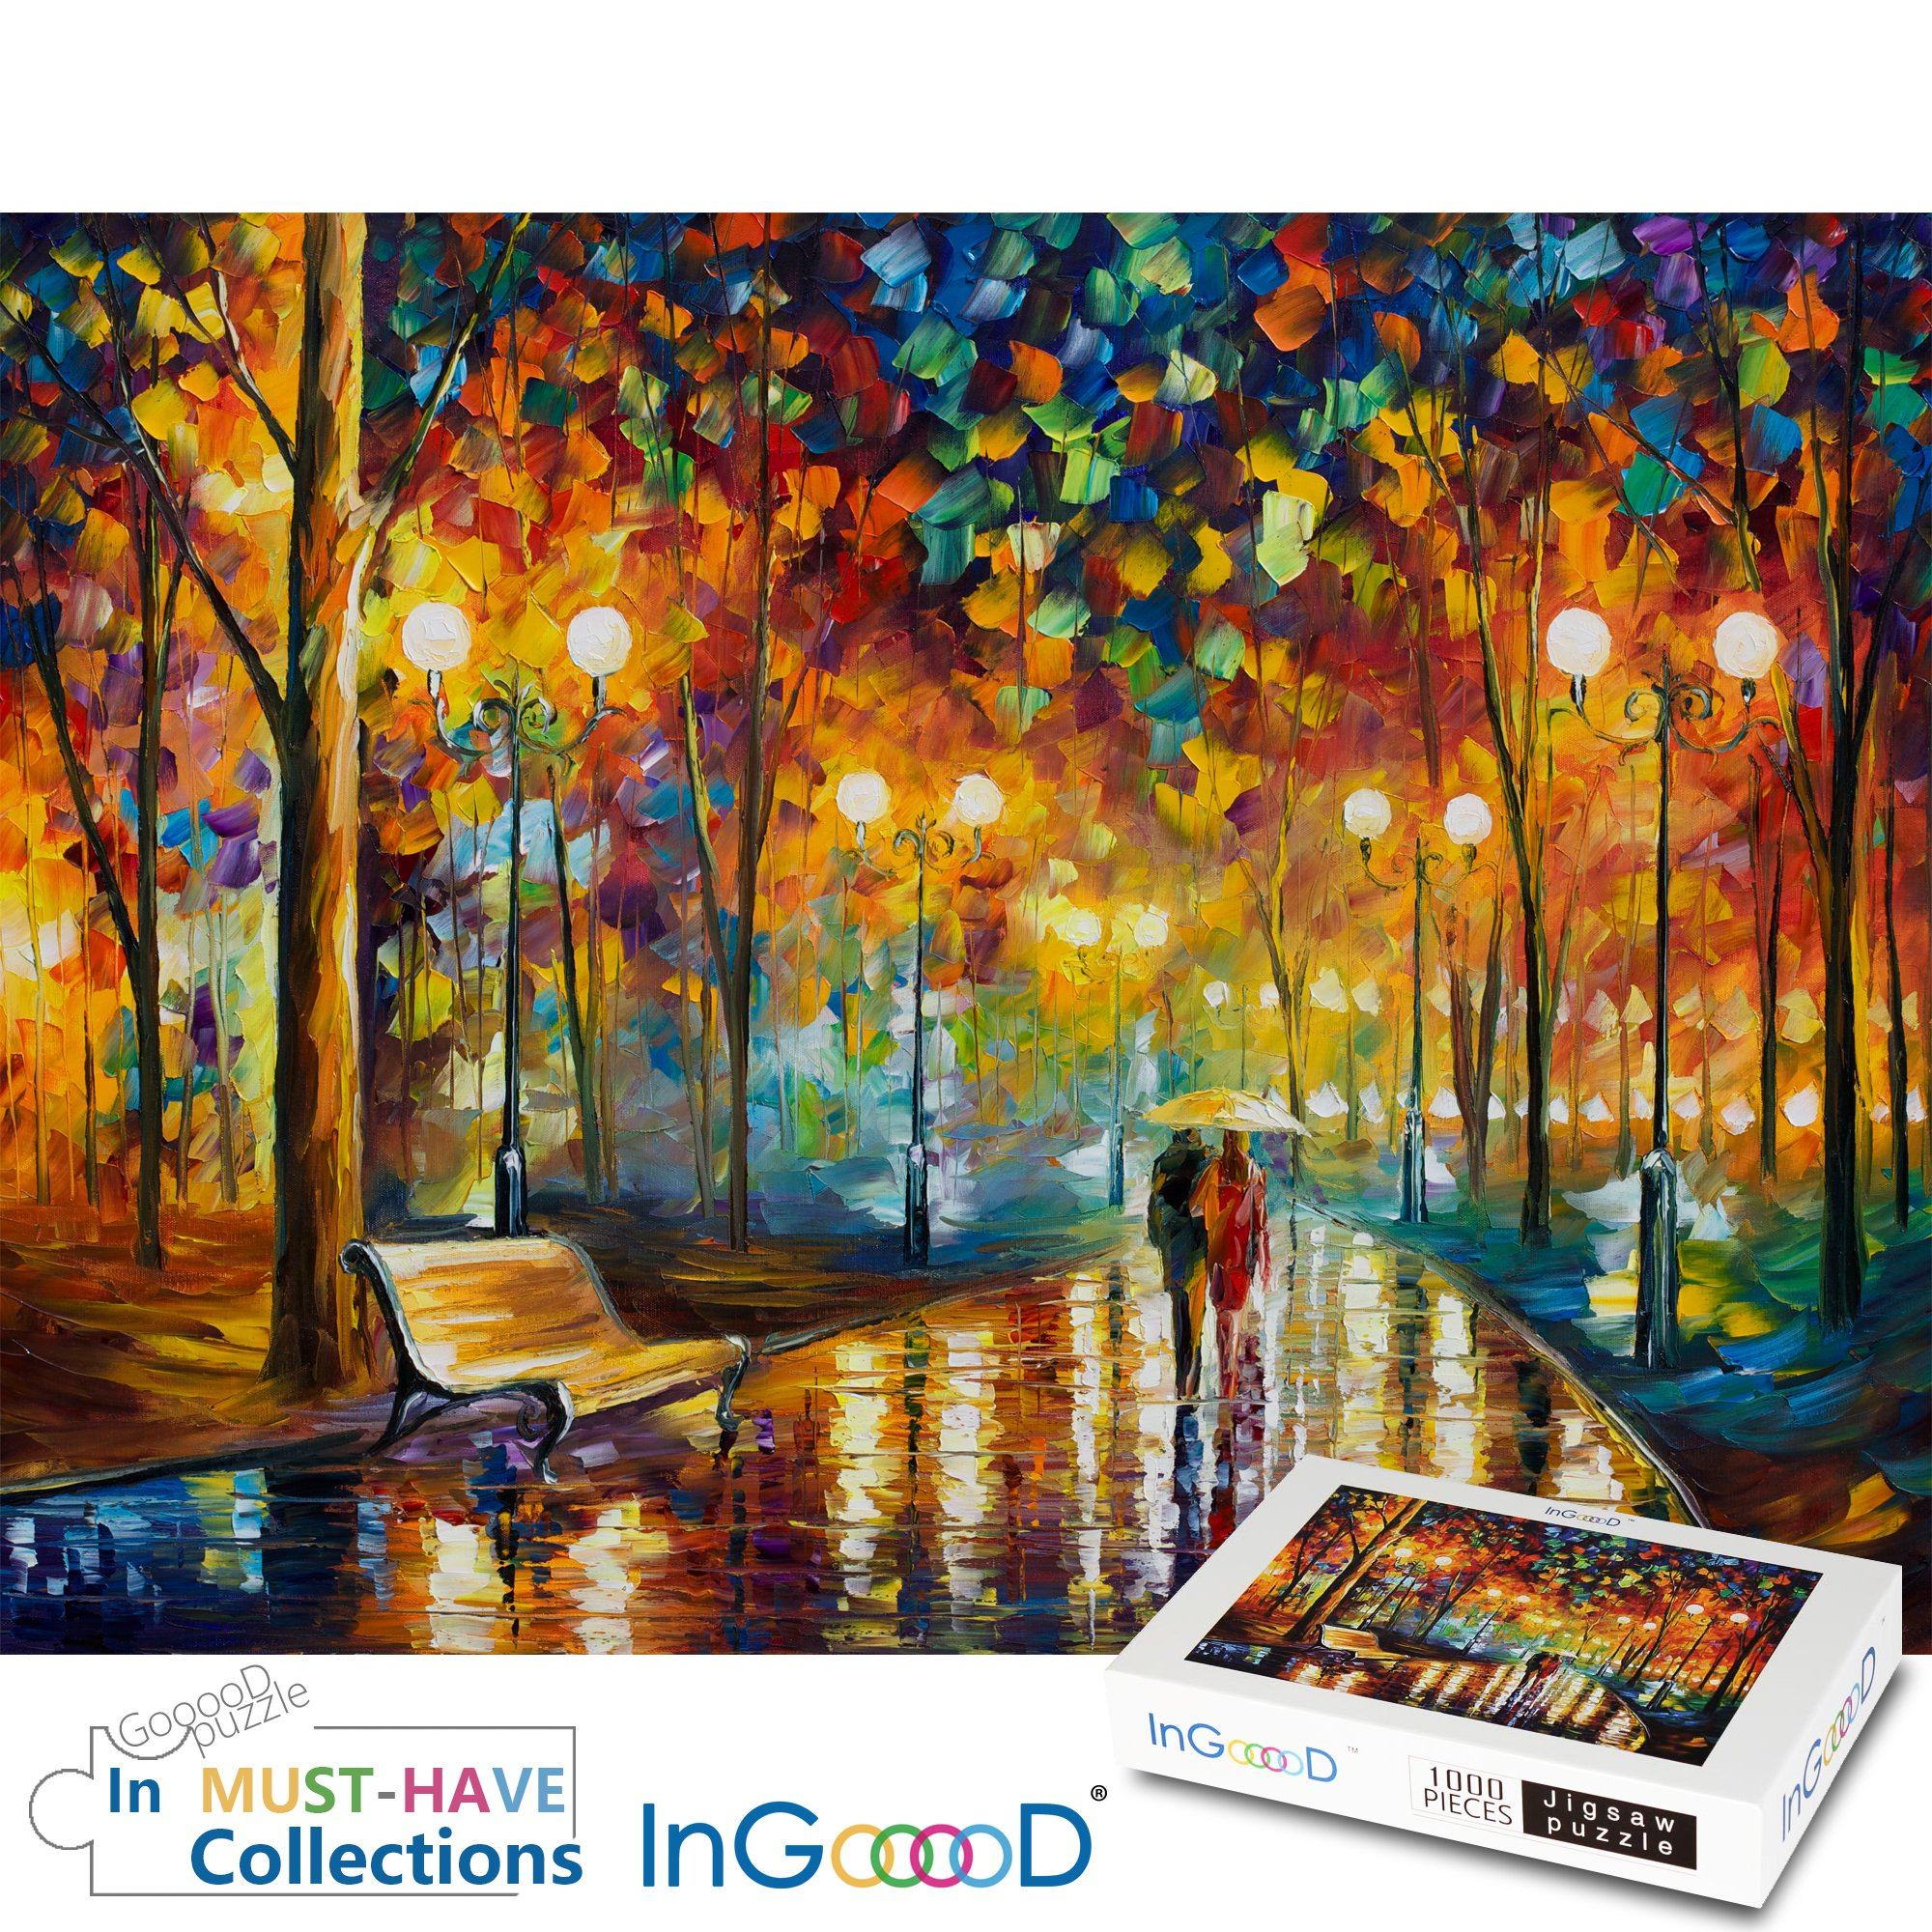 Ingooood Rainy Night Walk paper puzzle 1000 pieces by Ingooood